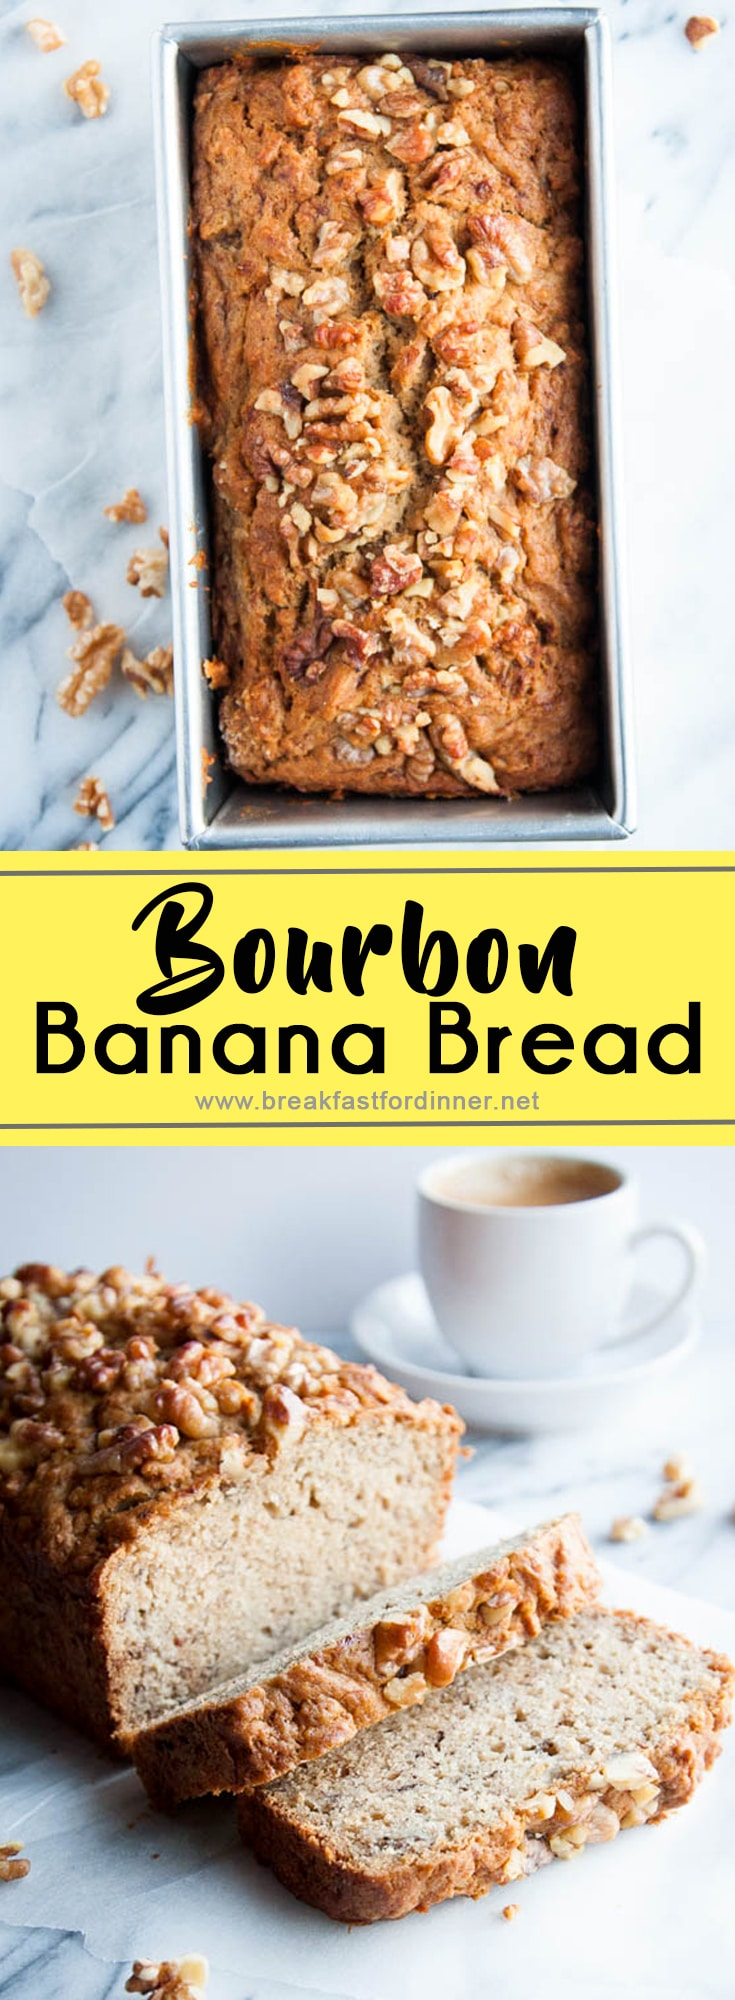 My favourite moist 3-banana Banana Bread Recipe with a secret ingredient: bourbon! It's always 5 o'clock somewhere!